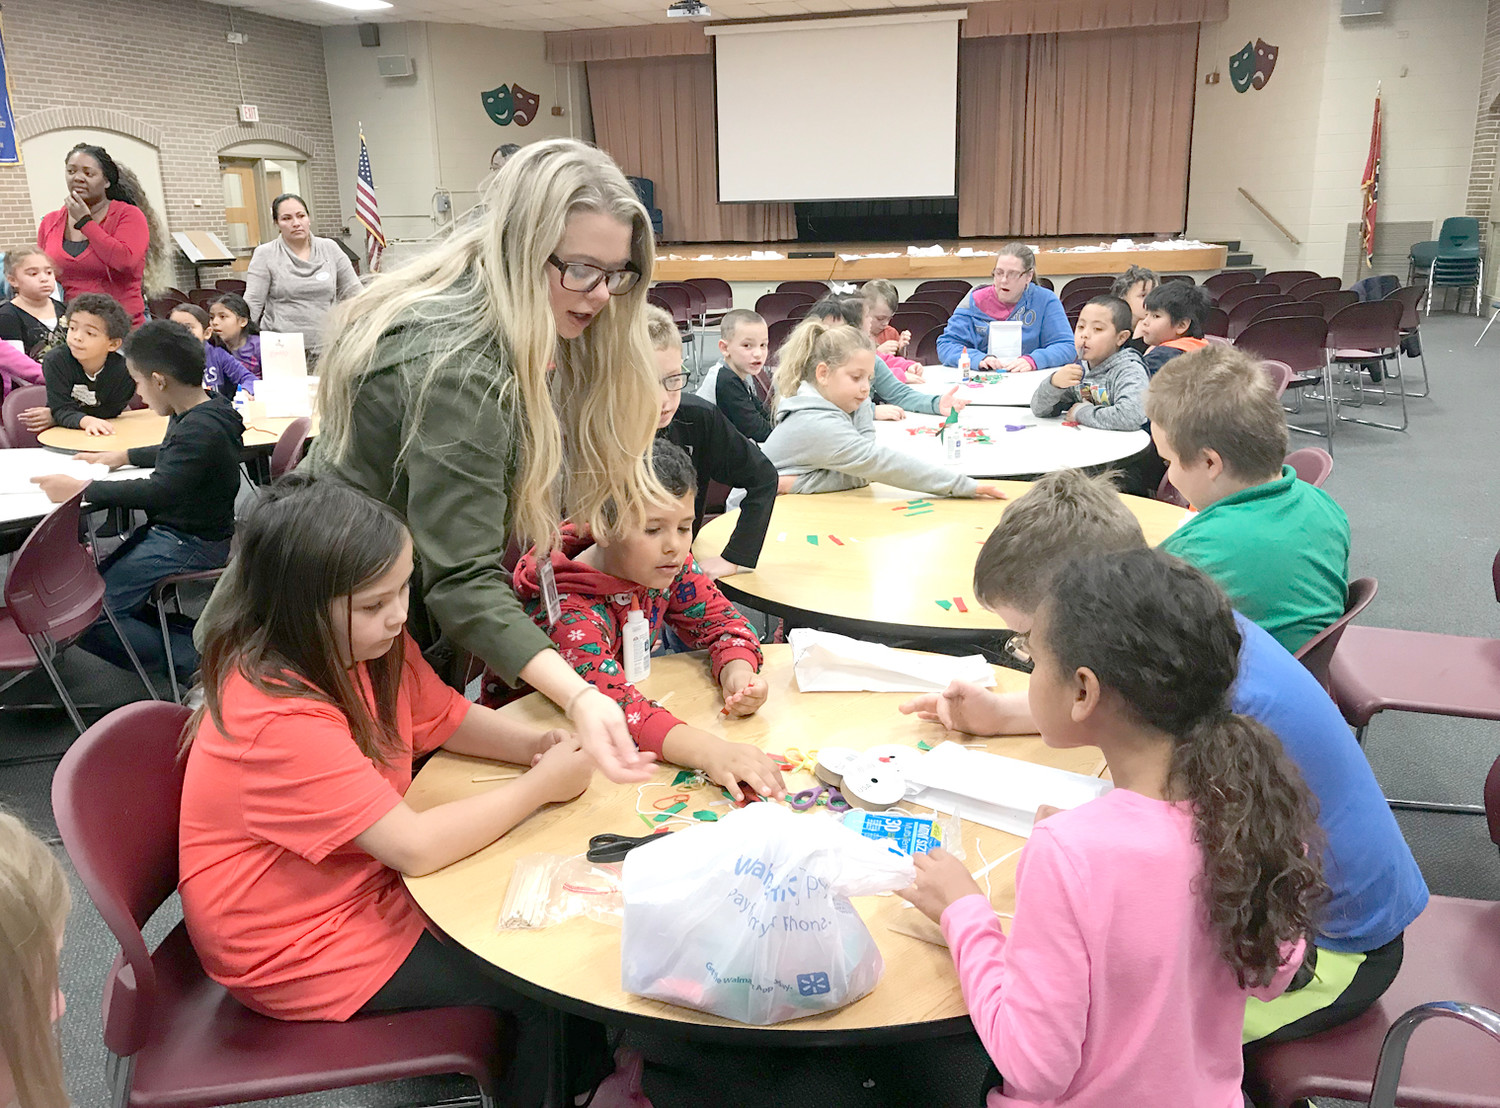 COLLABORATING on designs, students at Blythe-Bower Elementary School make ornaments during a holiday event.